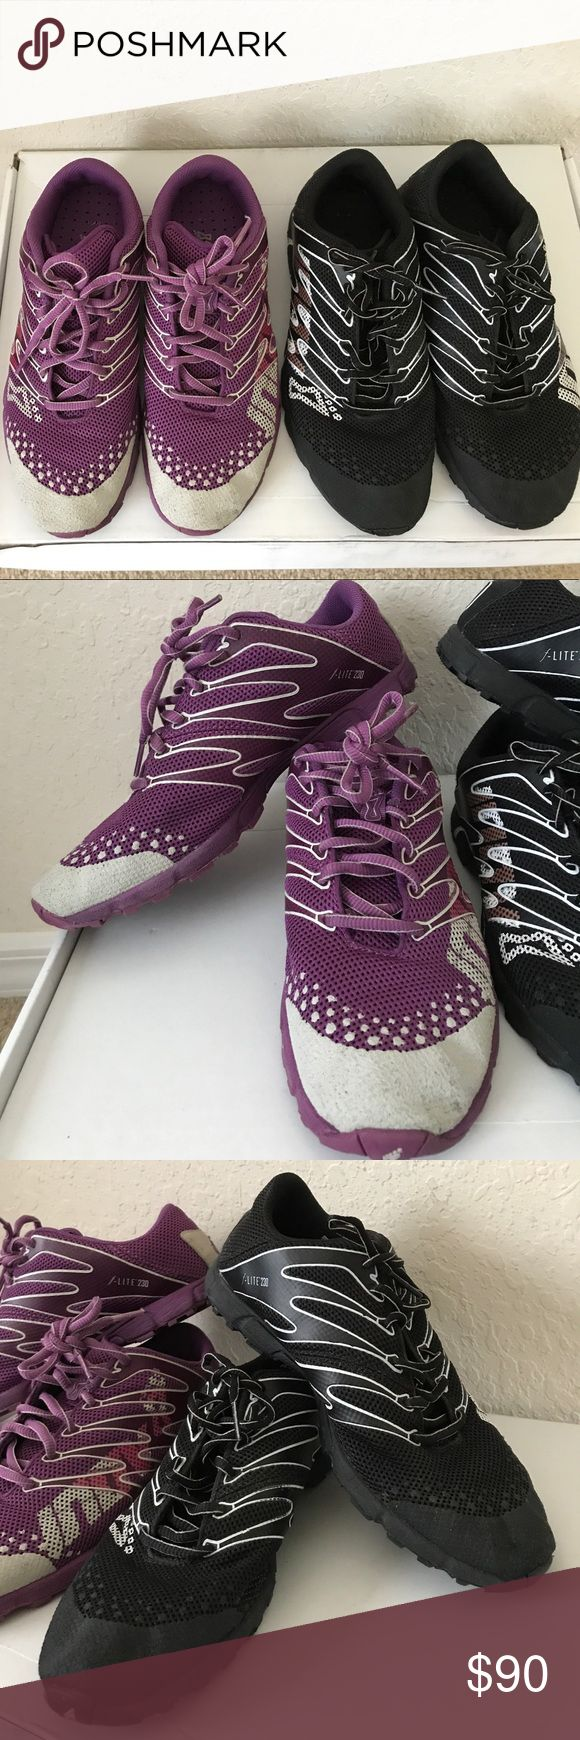 Women's Inov Training Shoes 7.5 F-Lite 230 Inov Women's Crossfit Shoes, Size 7.5 in Purple and Black. You are buying both shoes for less than the price of one. Original price for one pair is $125 These are used but in very good condition. (Wihtout the box) Inov Shoes Athletic Shoes